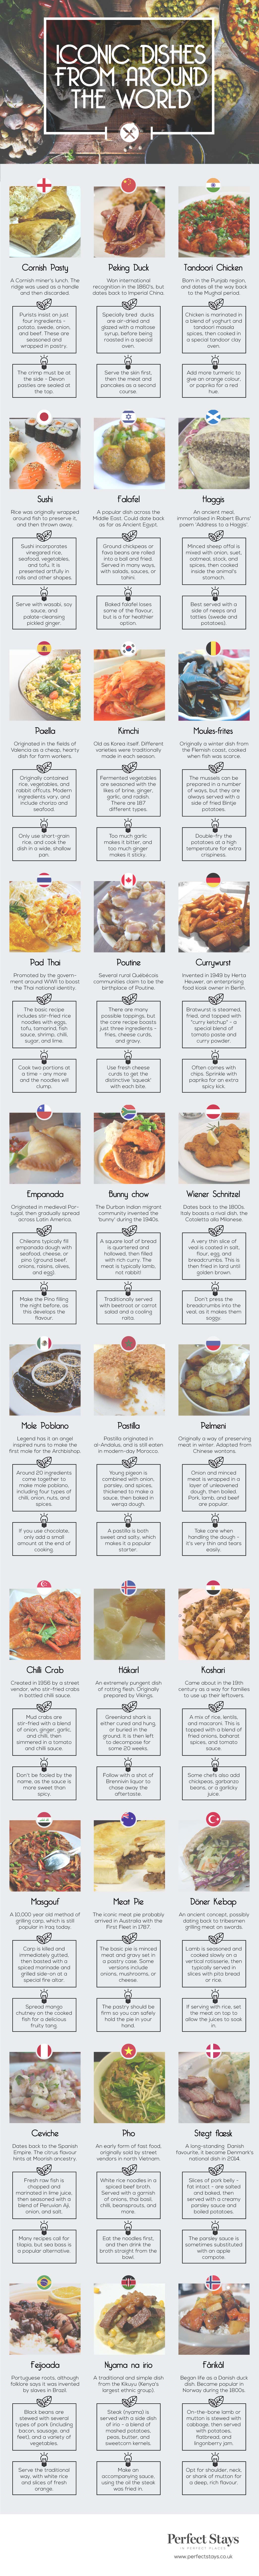 Iconic Dishes From Around the World